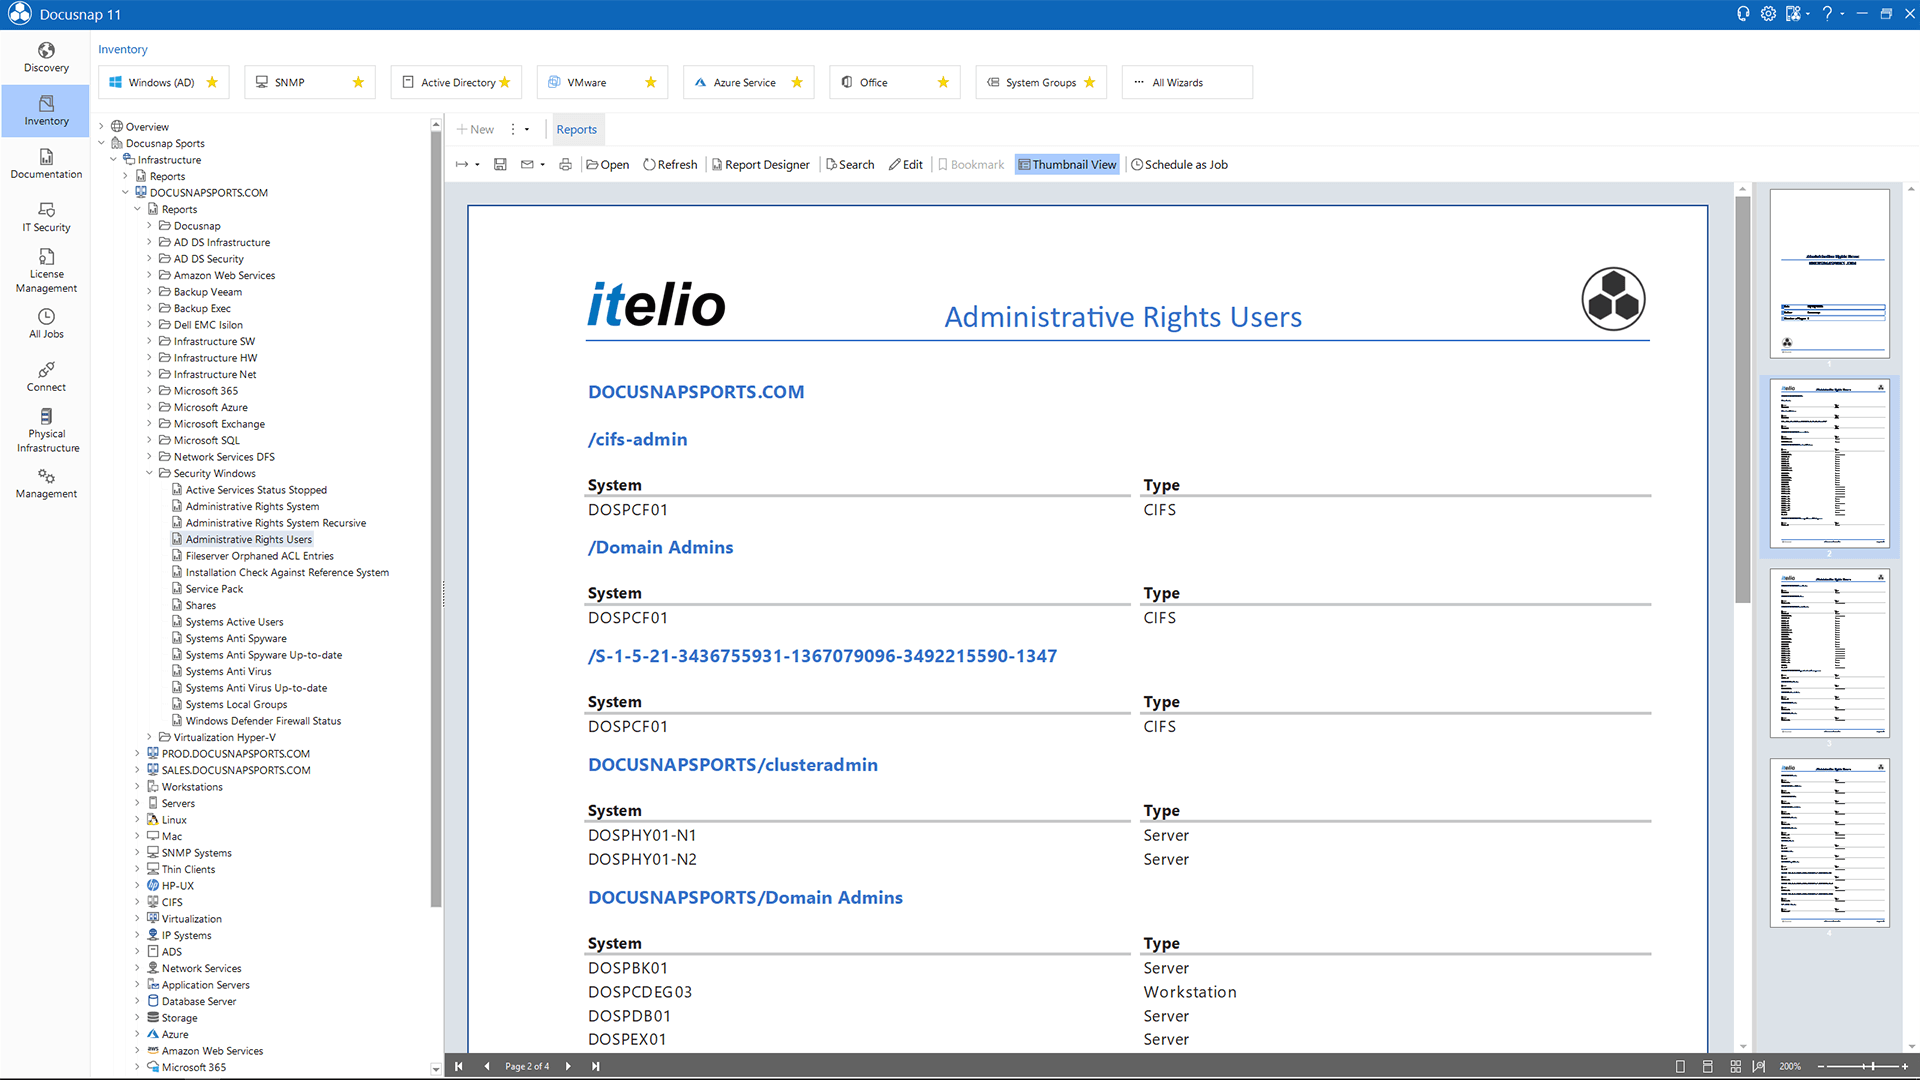 Screenshot: List of all users that have local administrator rights on particular systems